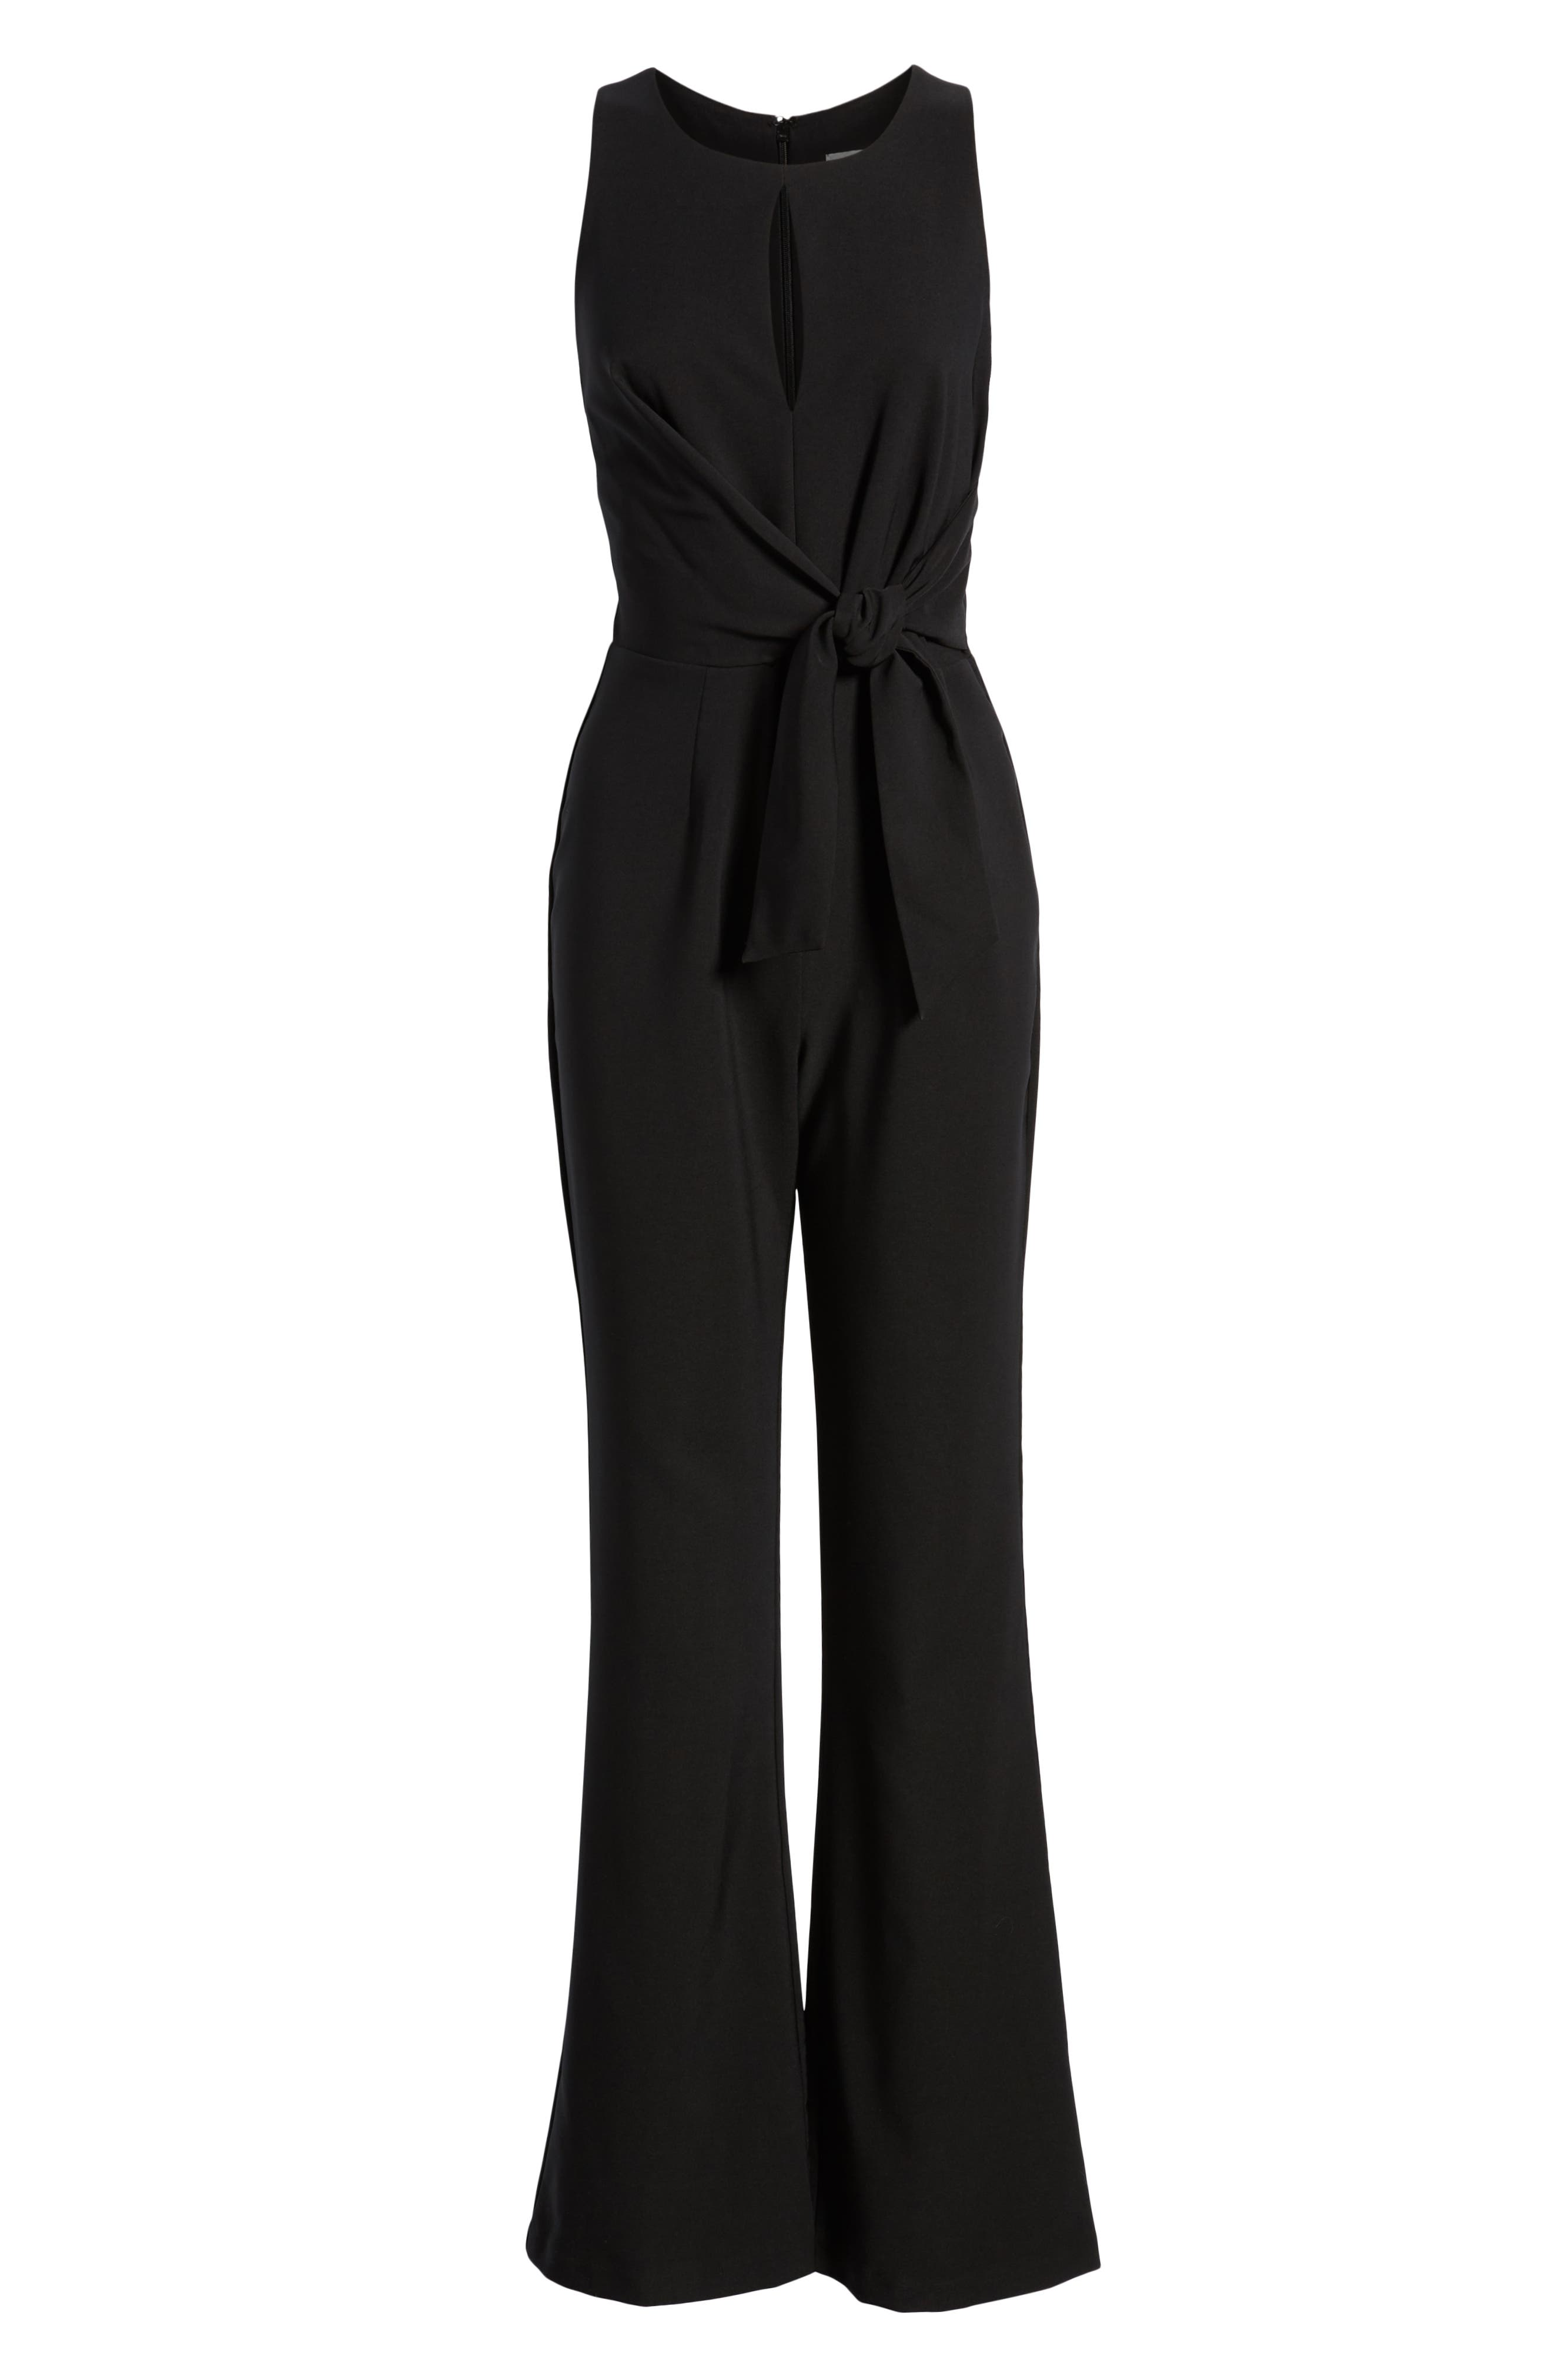 SOCIALITE, Tie Front Jumpsuit, Alternate thumbnail 7, color, BLACK